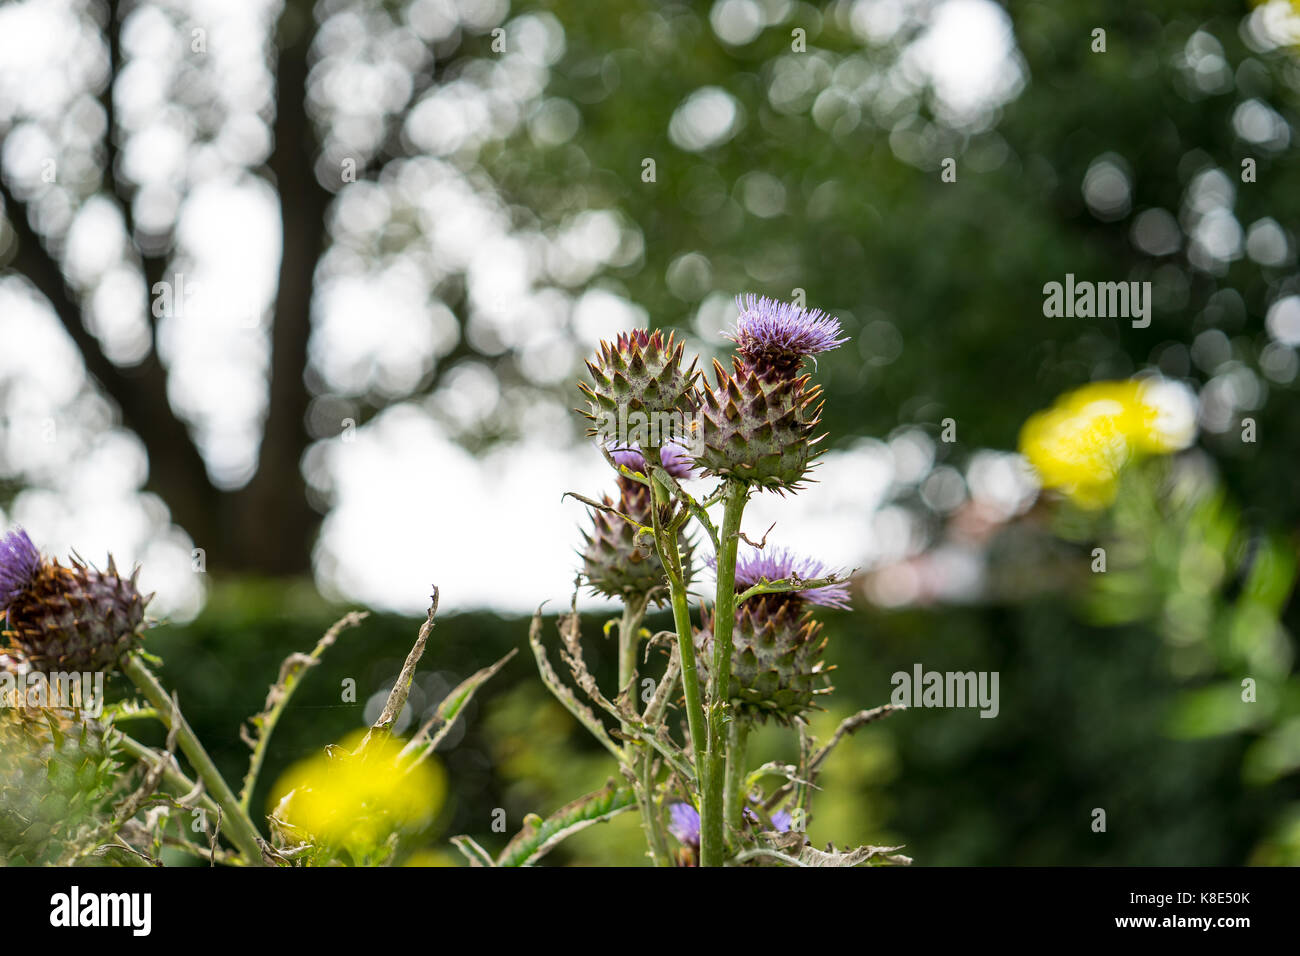 Milk Thistle in full bloom growing in the garden. The plant is used both as medicine and as a health diet supplement. - Stock Image